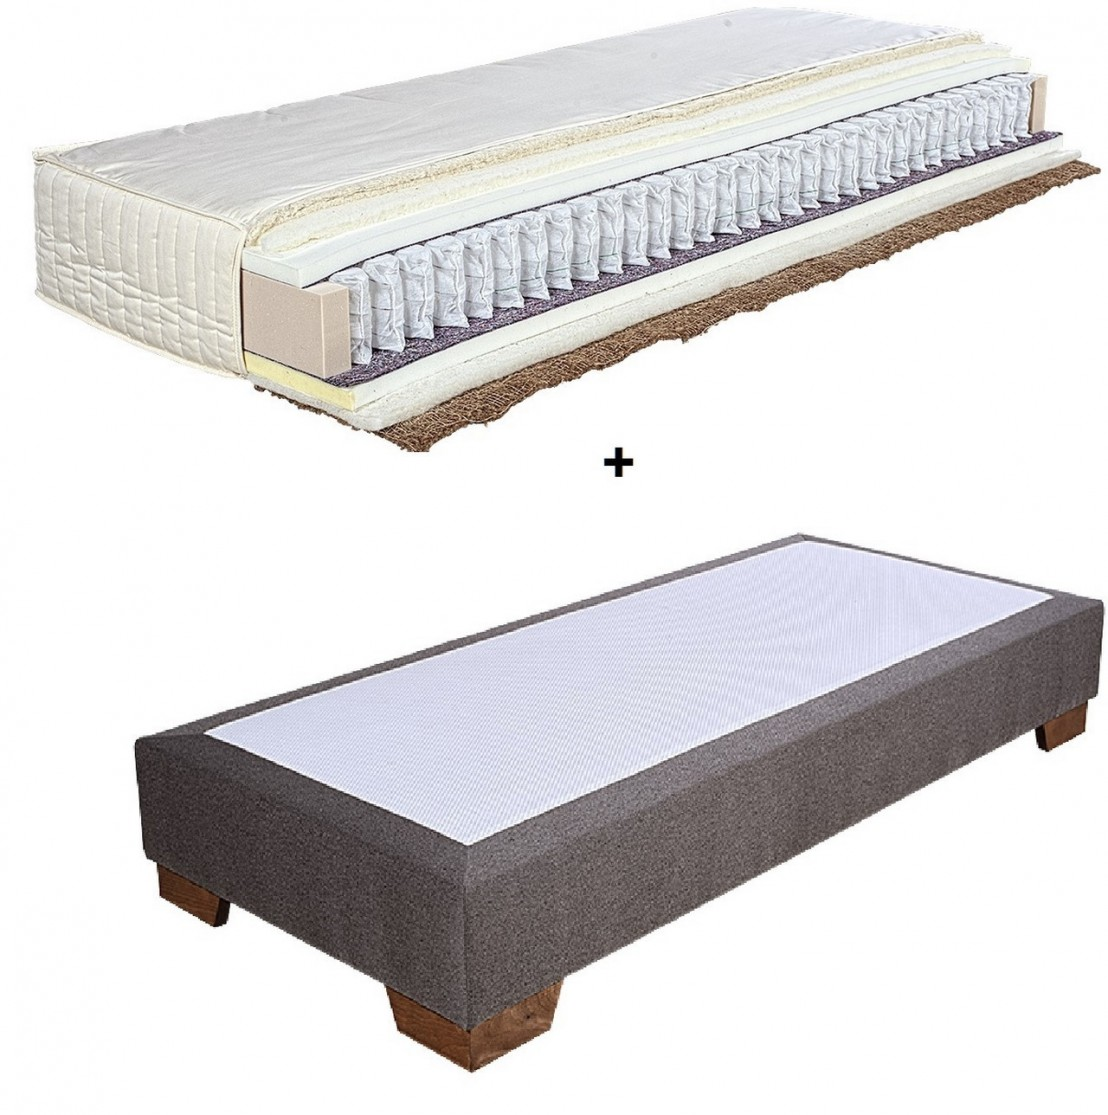 matelas 160 cm en fibres naturelles sommiers clemens. Black Bedroom Furniture Sets. Home Design Ideas